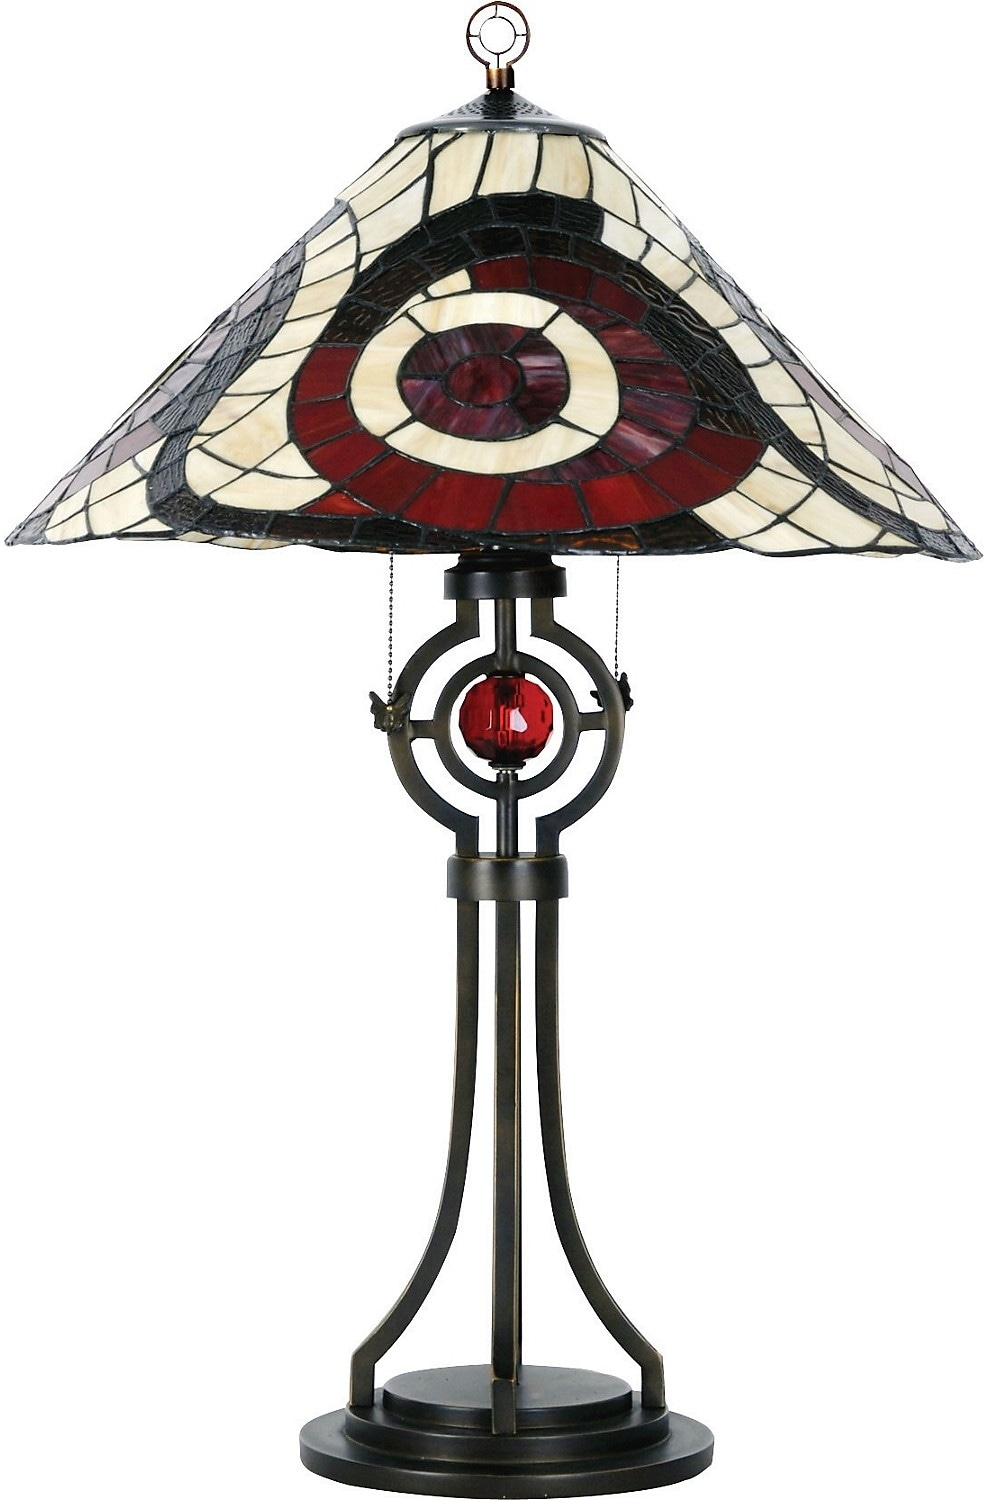 Cosmopolitan Table Lamp with Stained Glass Shade